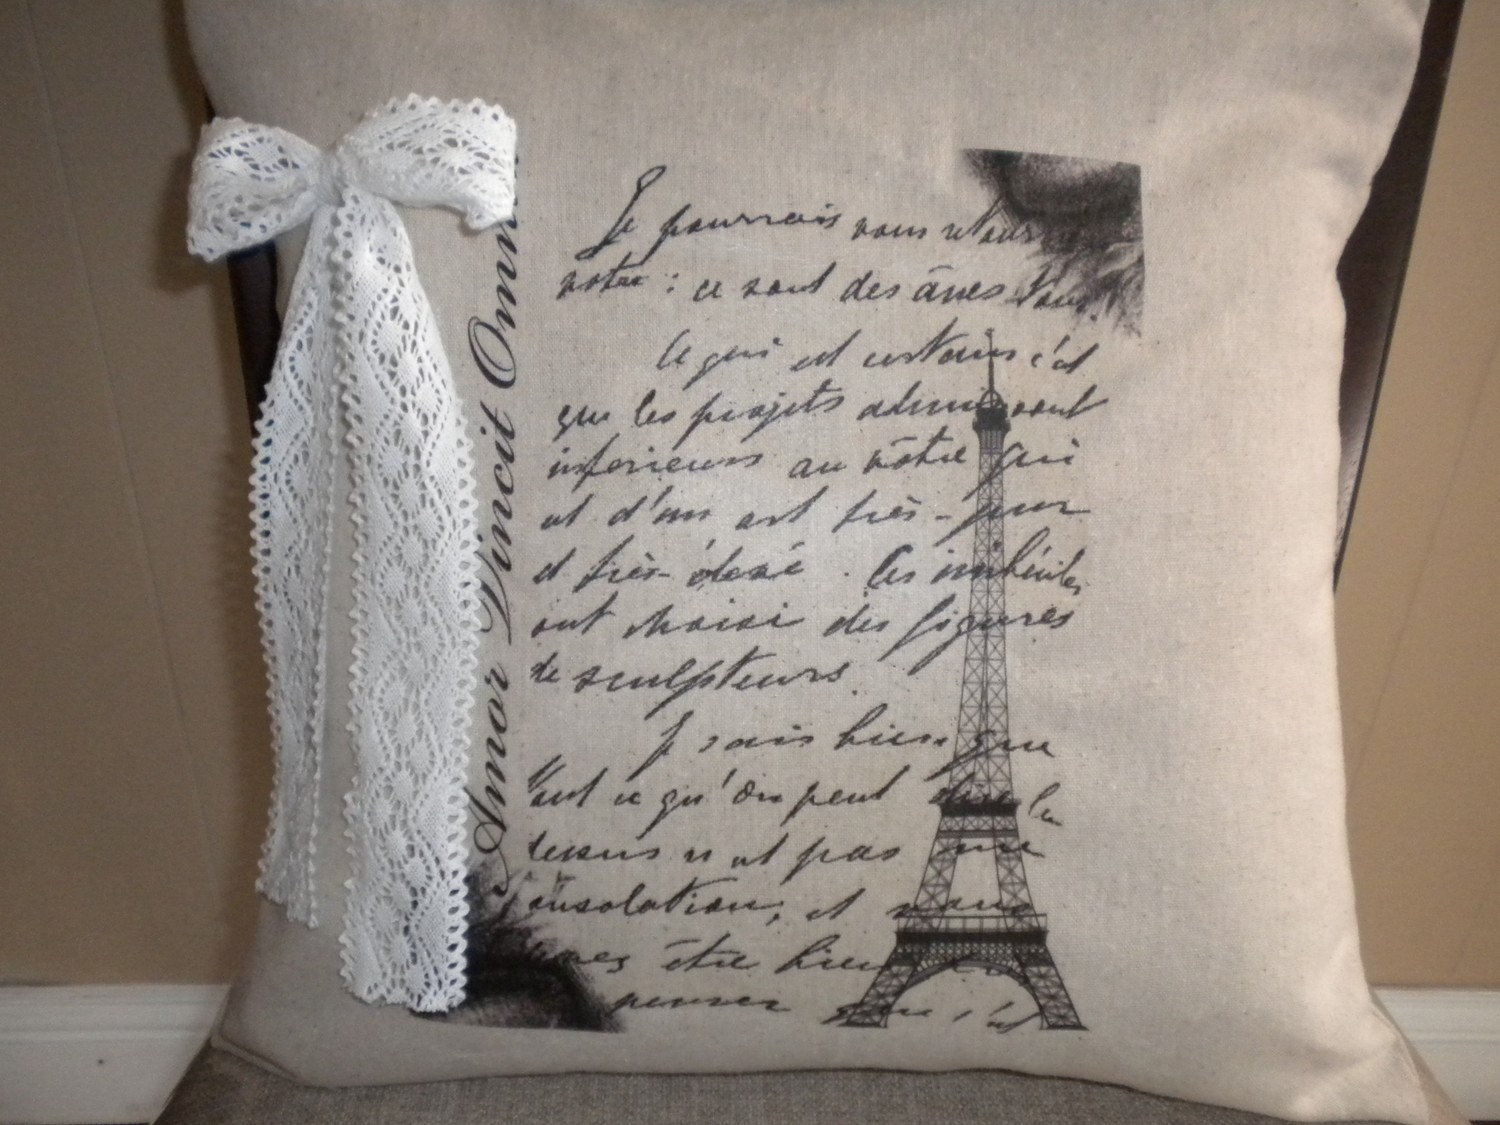 16x16 Pillow Cover with French Text and Eiffel Tower